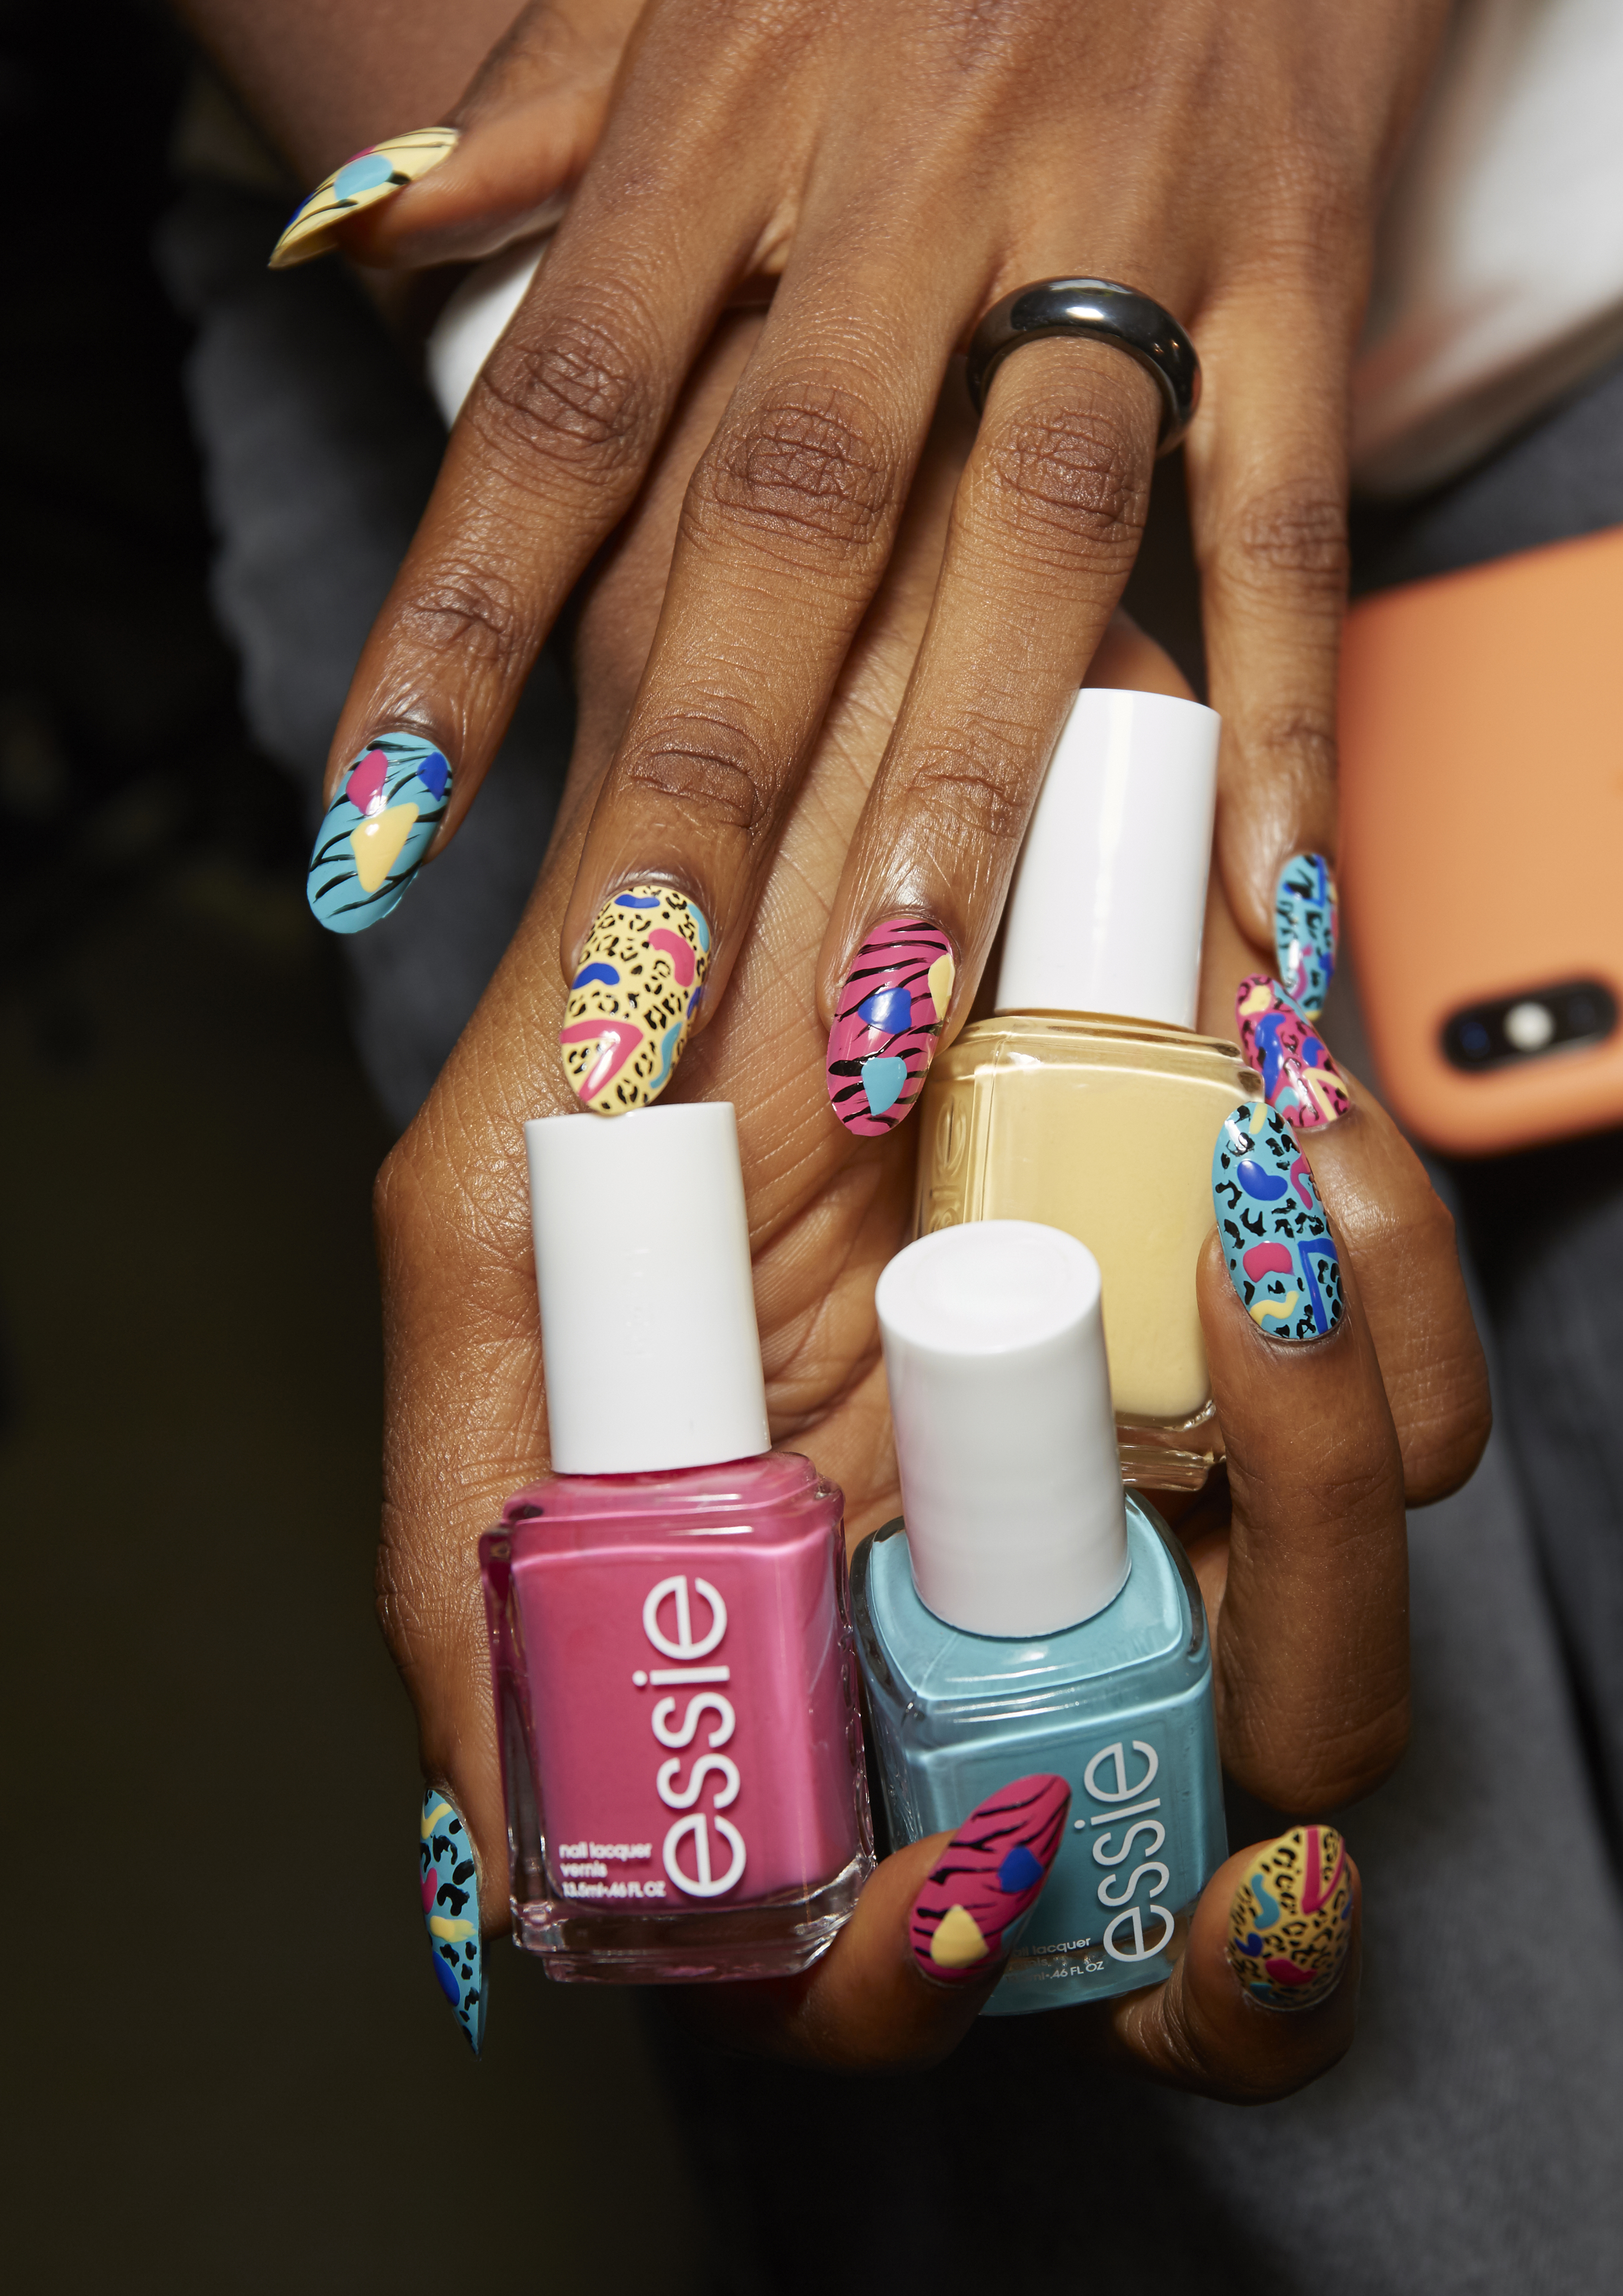 ESSIE FW Sep 2019 Jeremy Scott Graphic Nails Artist Miss Pop Nails NYFW Faiza Inam SincerelyHumble Saturated colors geometric shapes animal prints 1